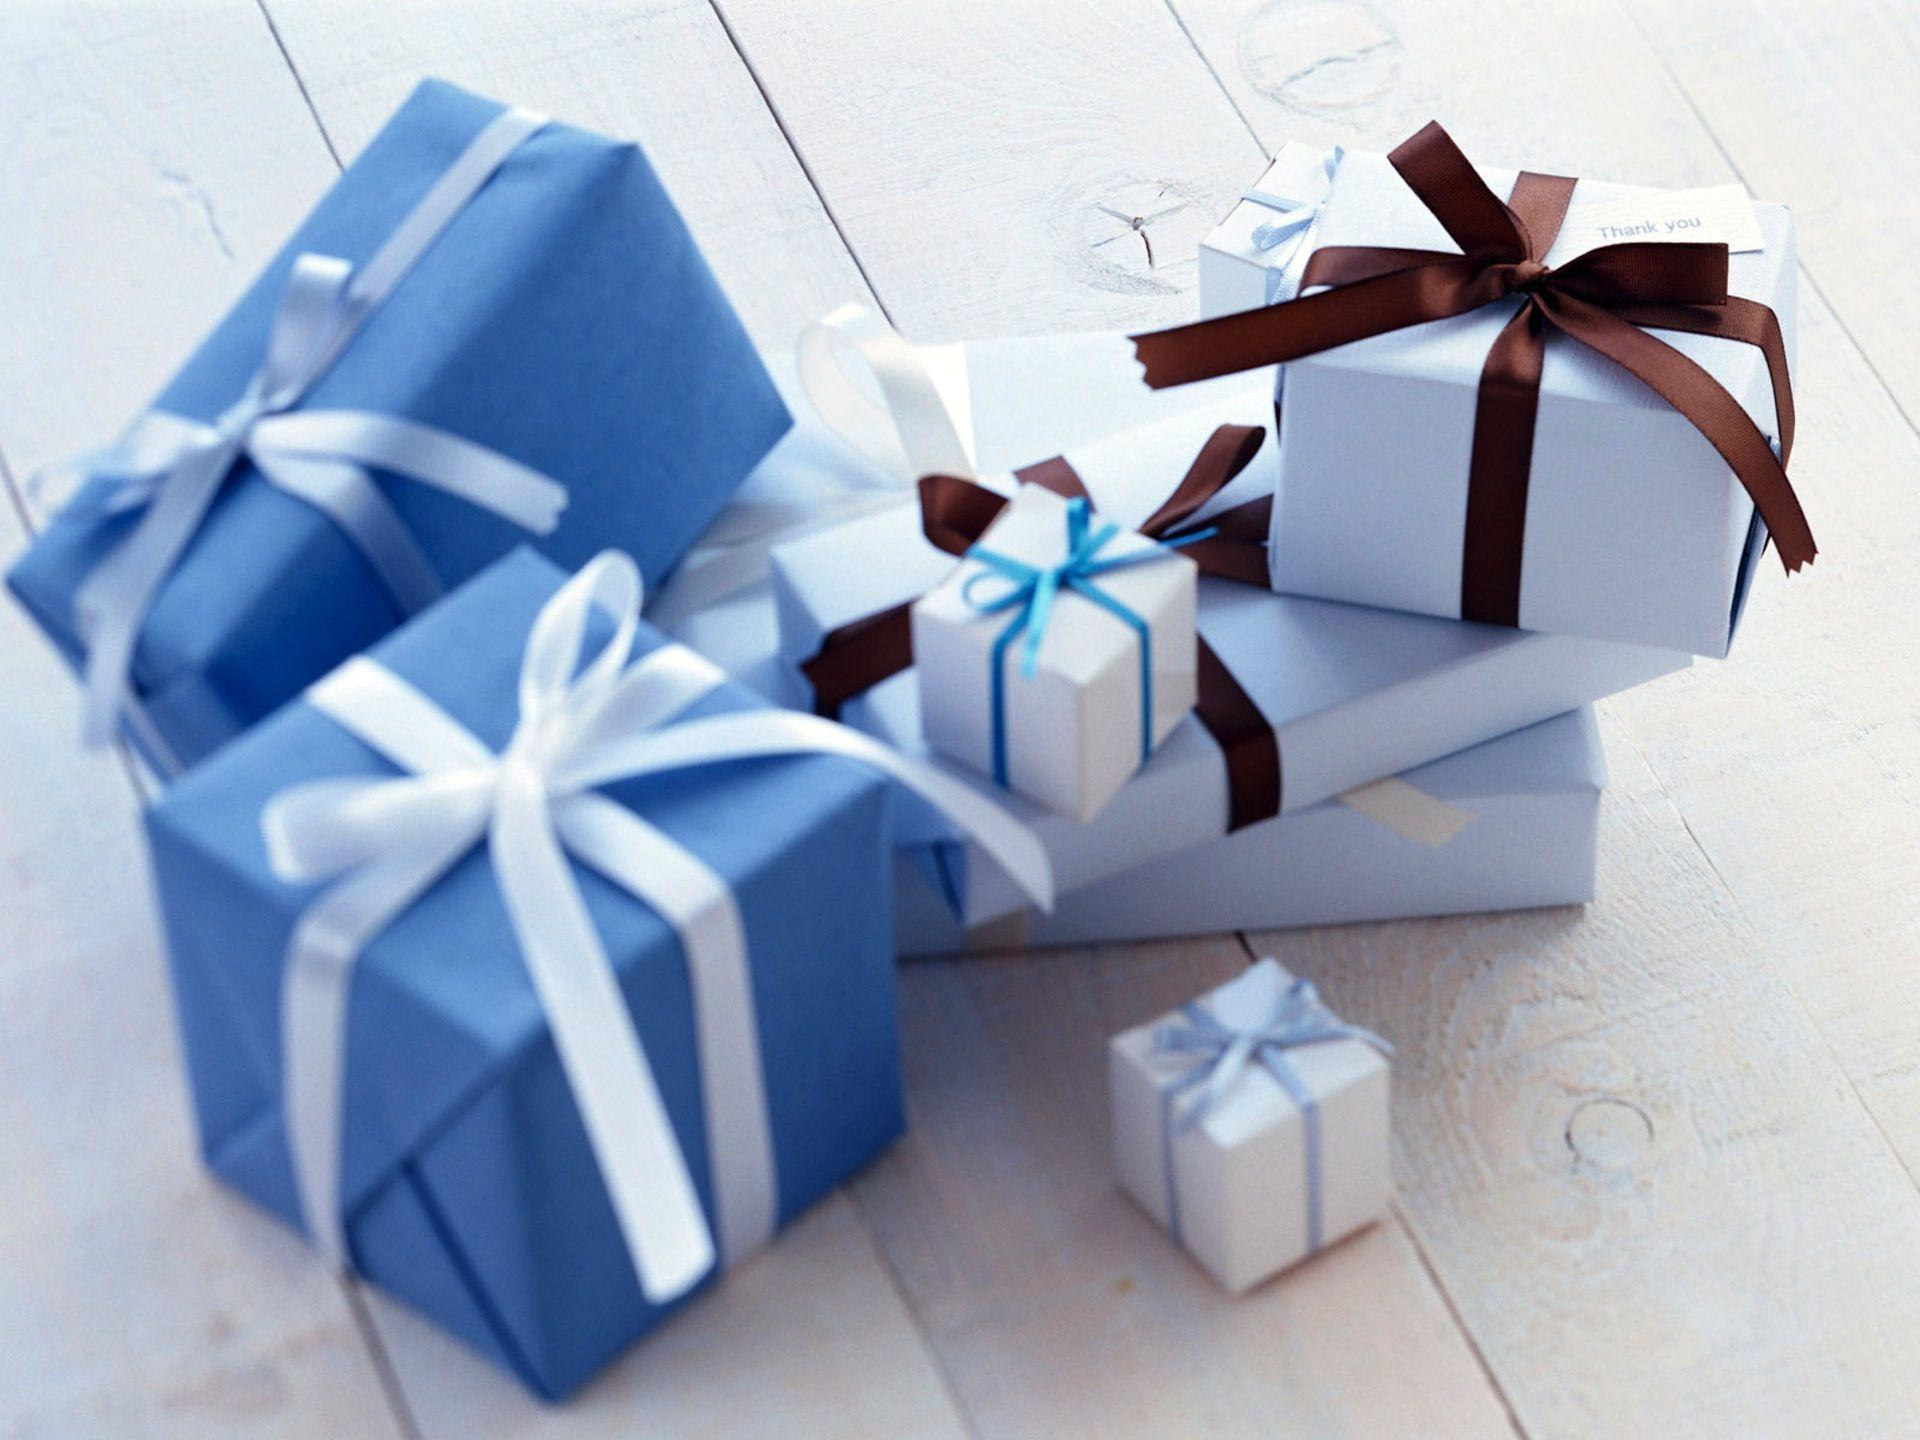 Gifts on Anniversary